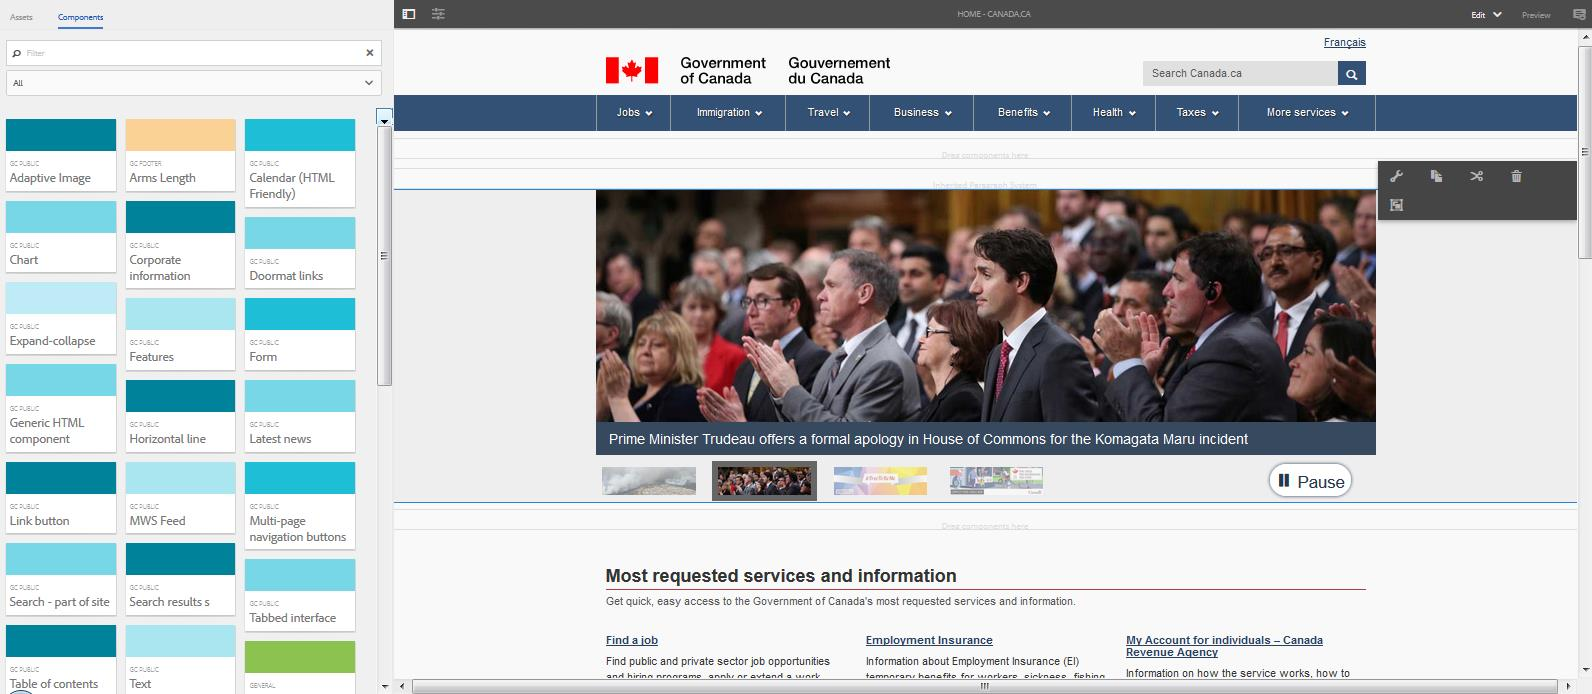 A view of Canada.ca's home page from inside Adobe Experience Manager, the new CMS used for the portal. (Click for larger version.)